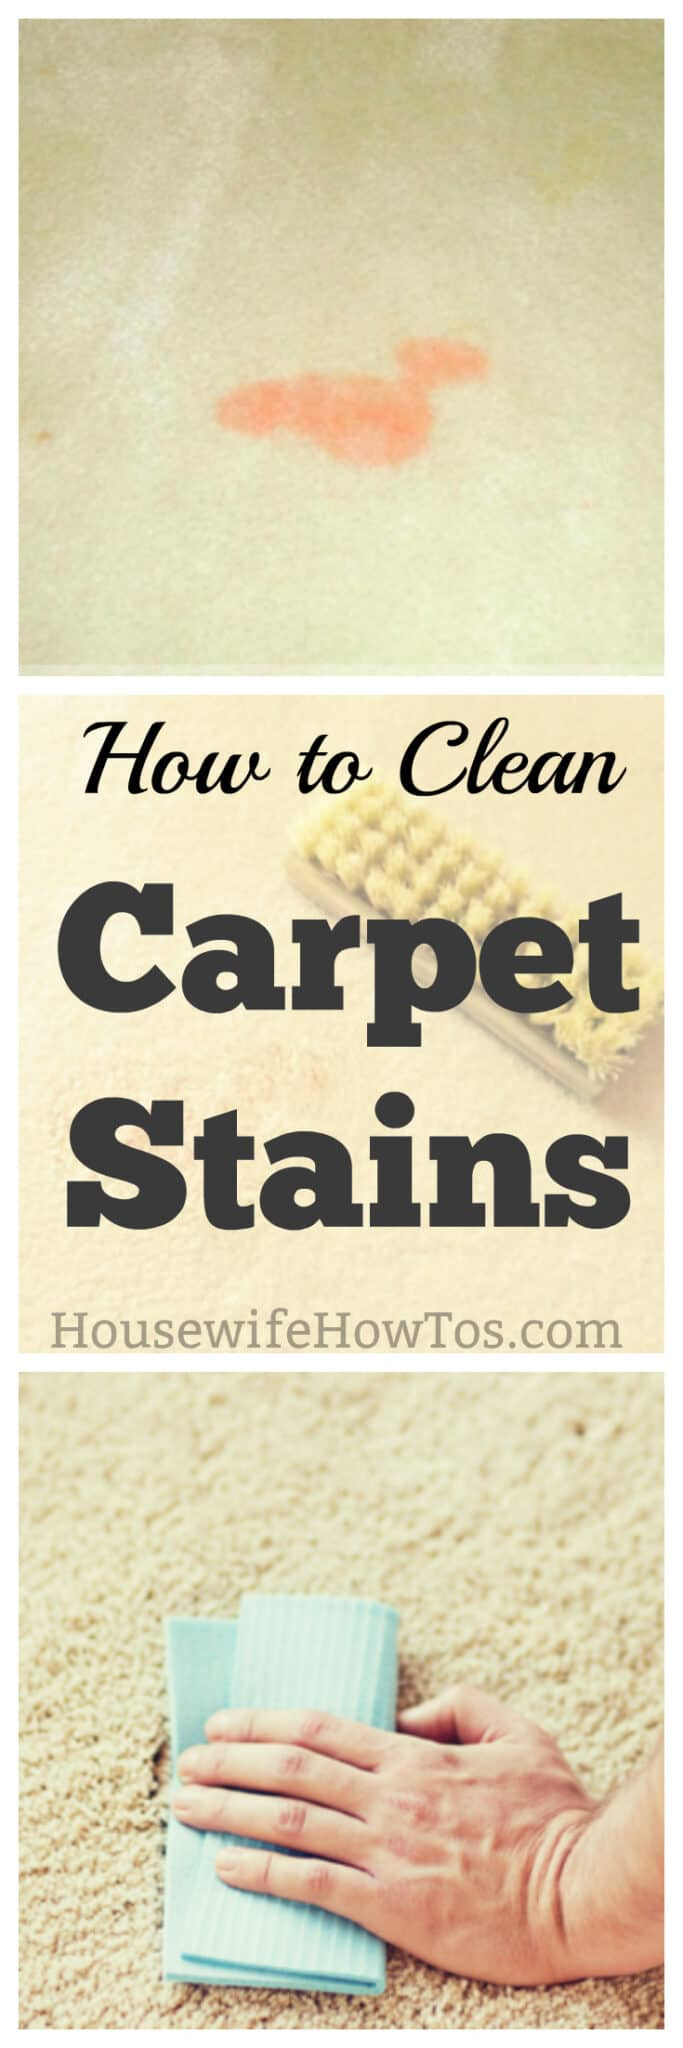 How to Clean Carpet Stains - Grease, paint, pets, food, nail polish and more | #carpetstains #flooringcare #carpet #carpeting #cleaning #deepcleaning #stainremoval #springcleaning|